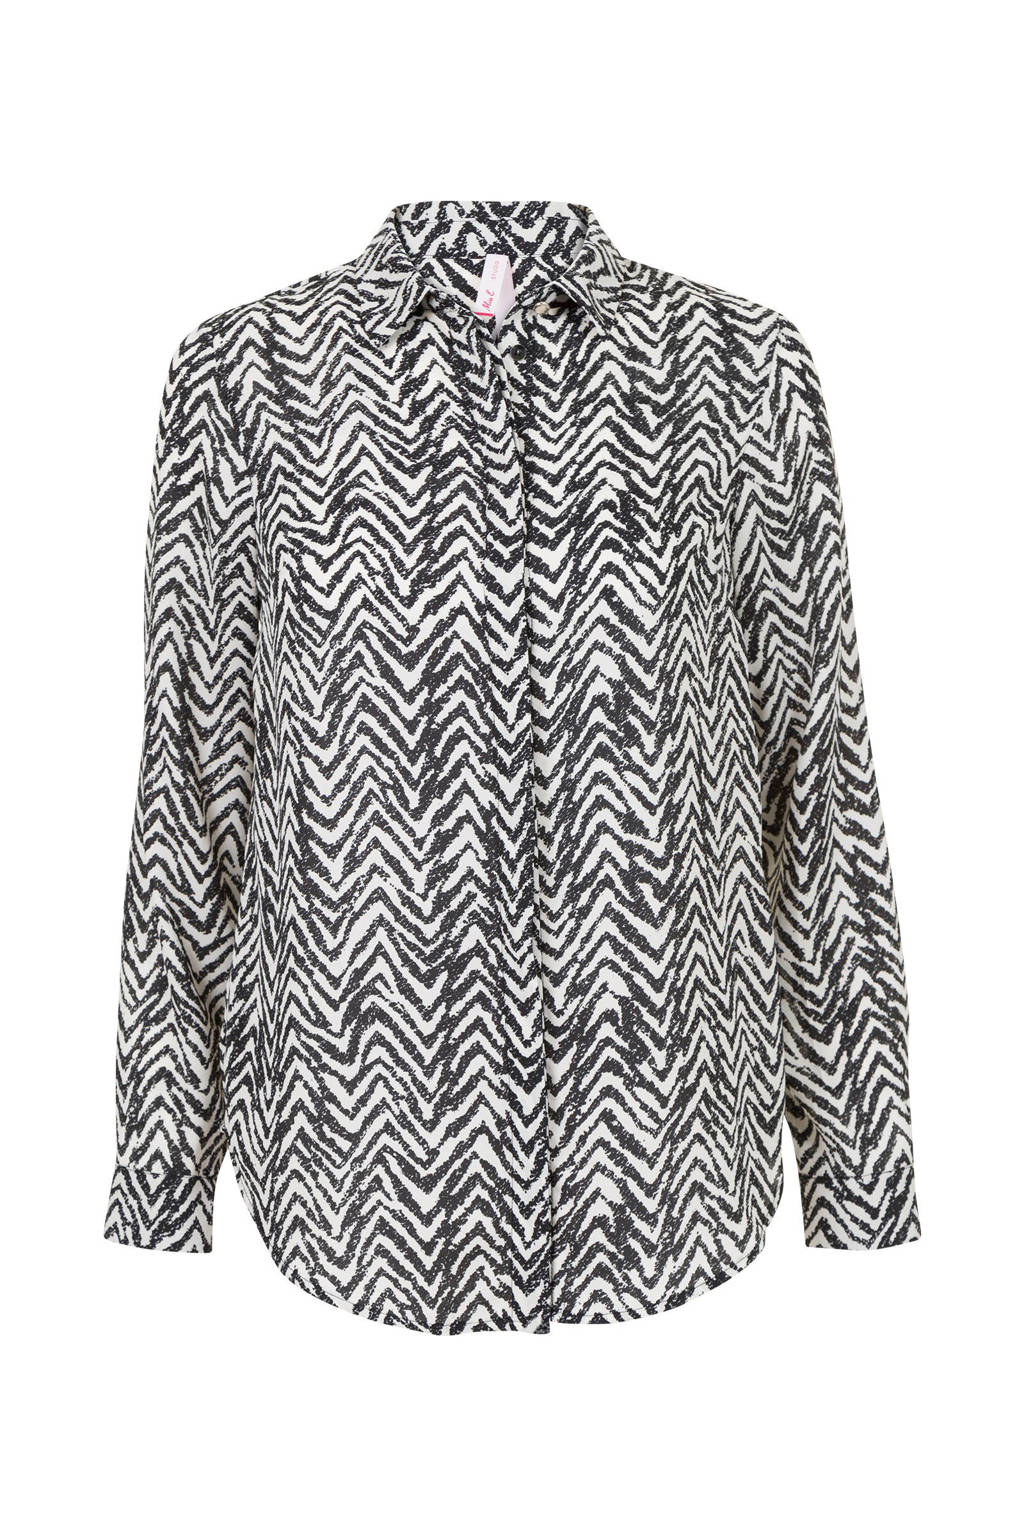 Miss Etam Regulier blouse met all over print zwart/wit, Zwart/wit